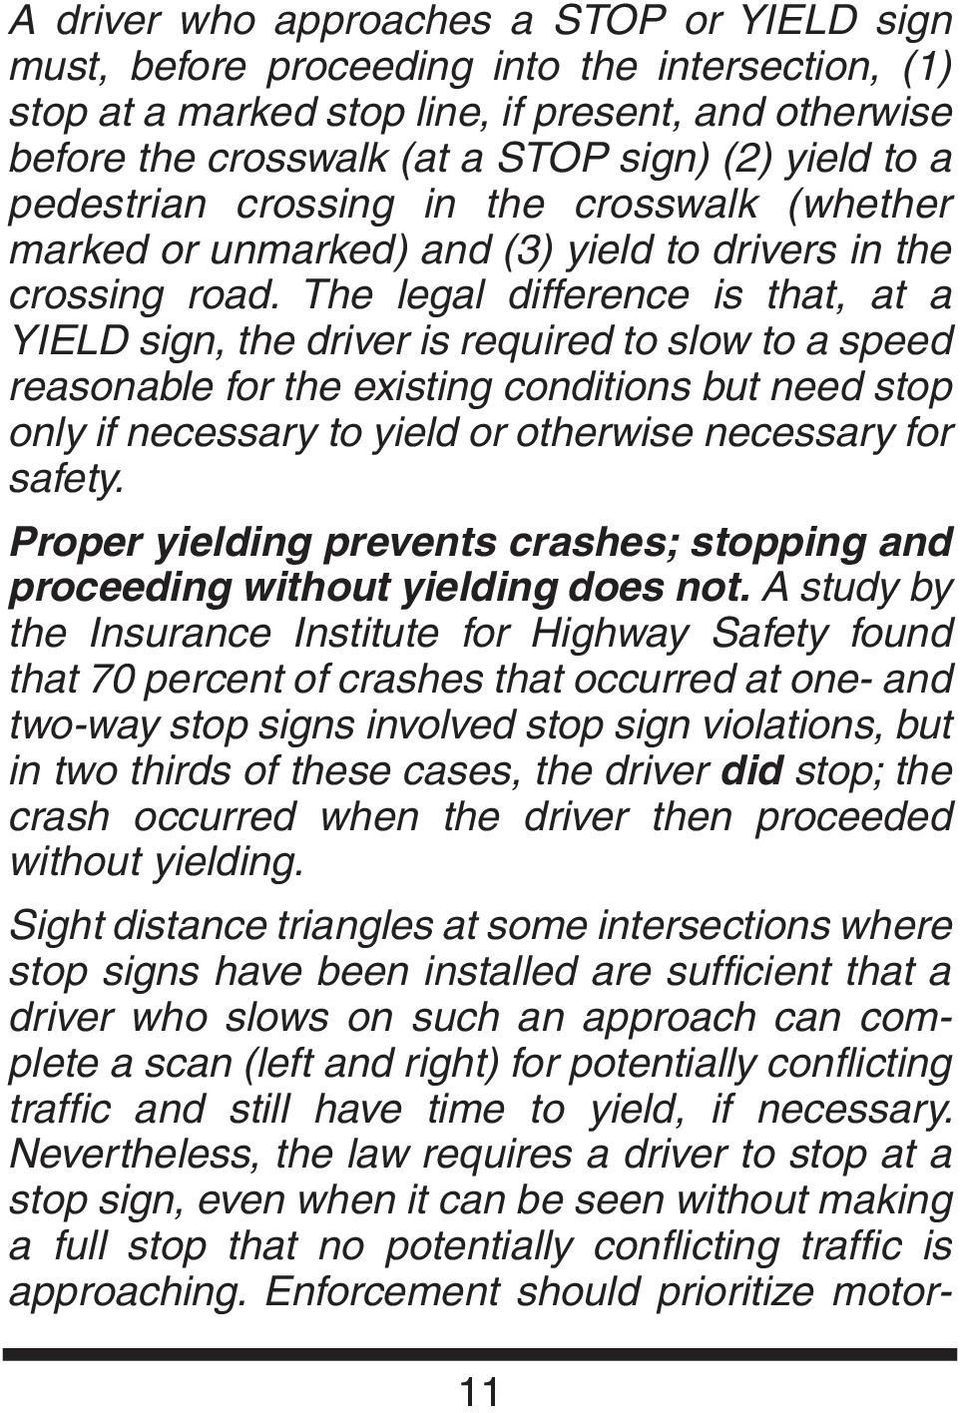 The legal difference is that, at a YIELD sign, the driver is required to slow to a speed reasonable for the existing conditions but need stop only if necessary to yield or otherwise necessary for